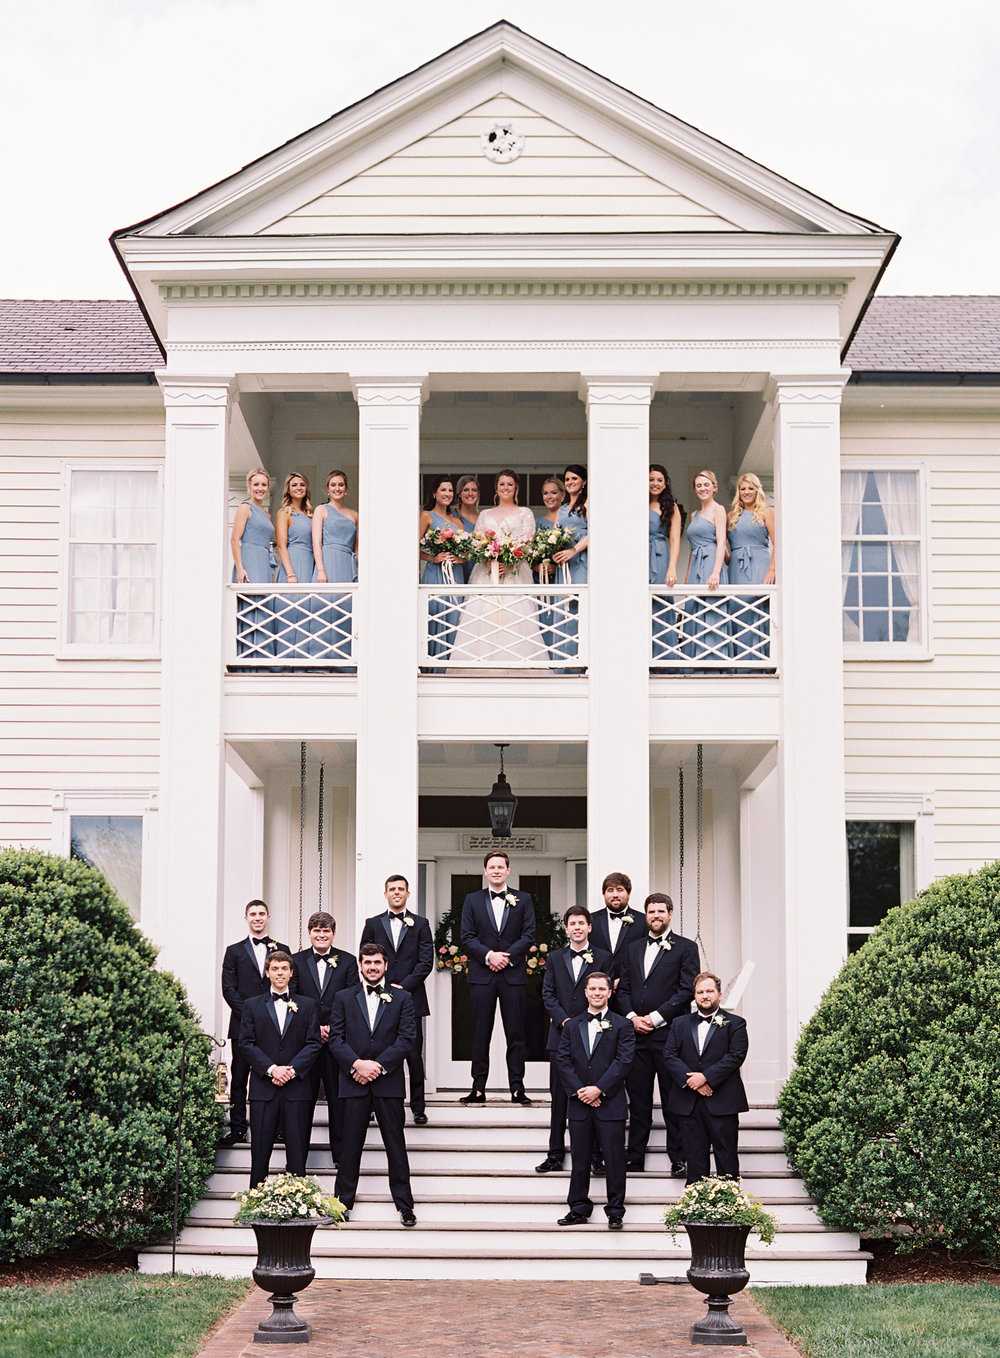 Bridal Party Portraits at the bride's childhood home in Franklin, TN